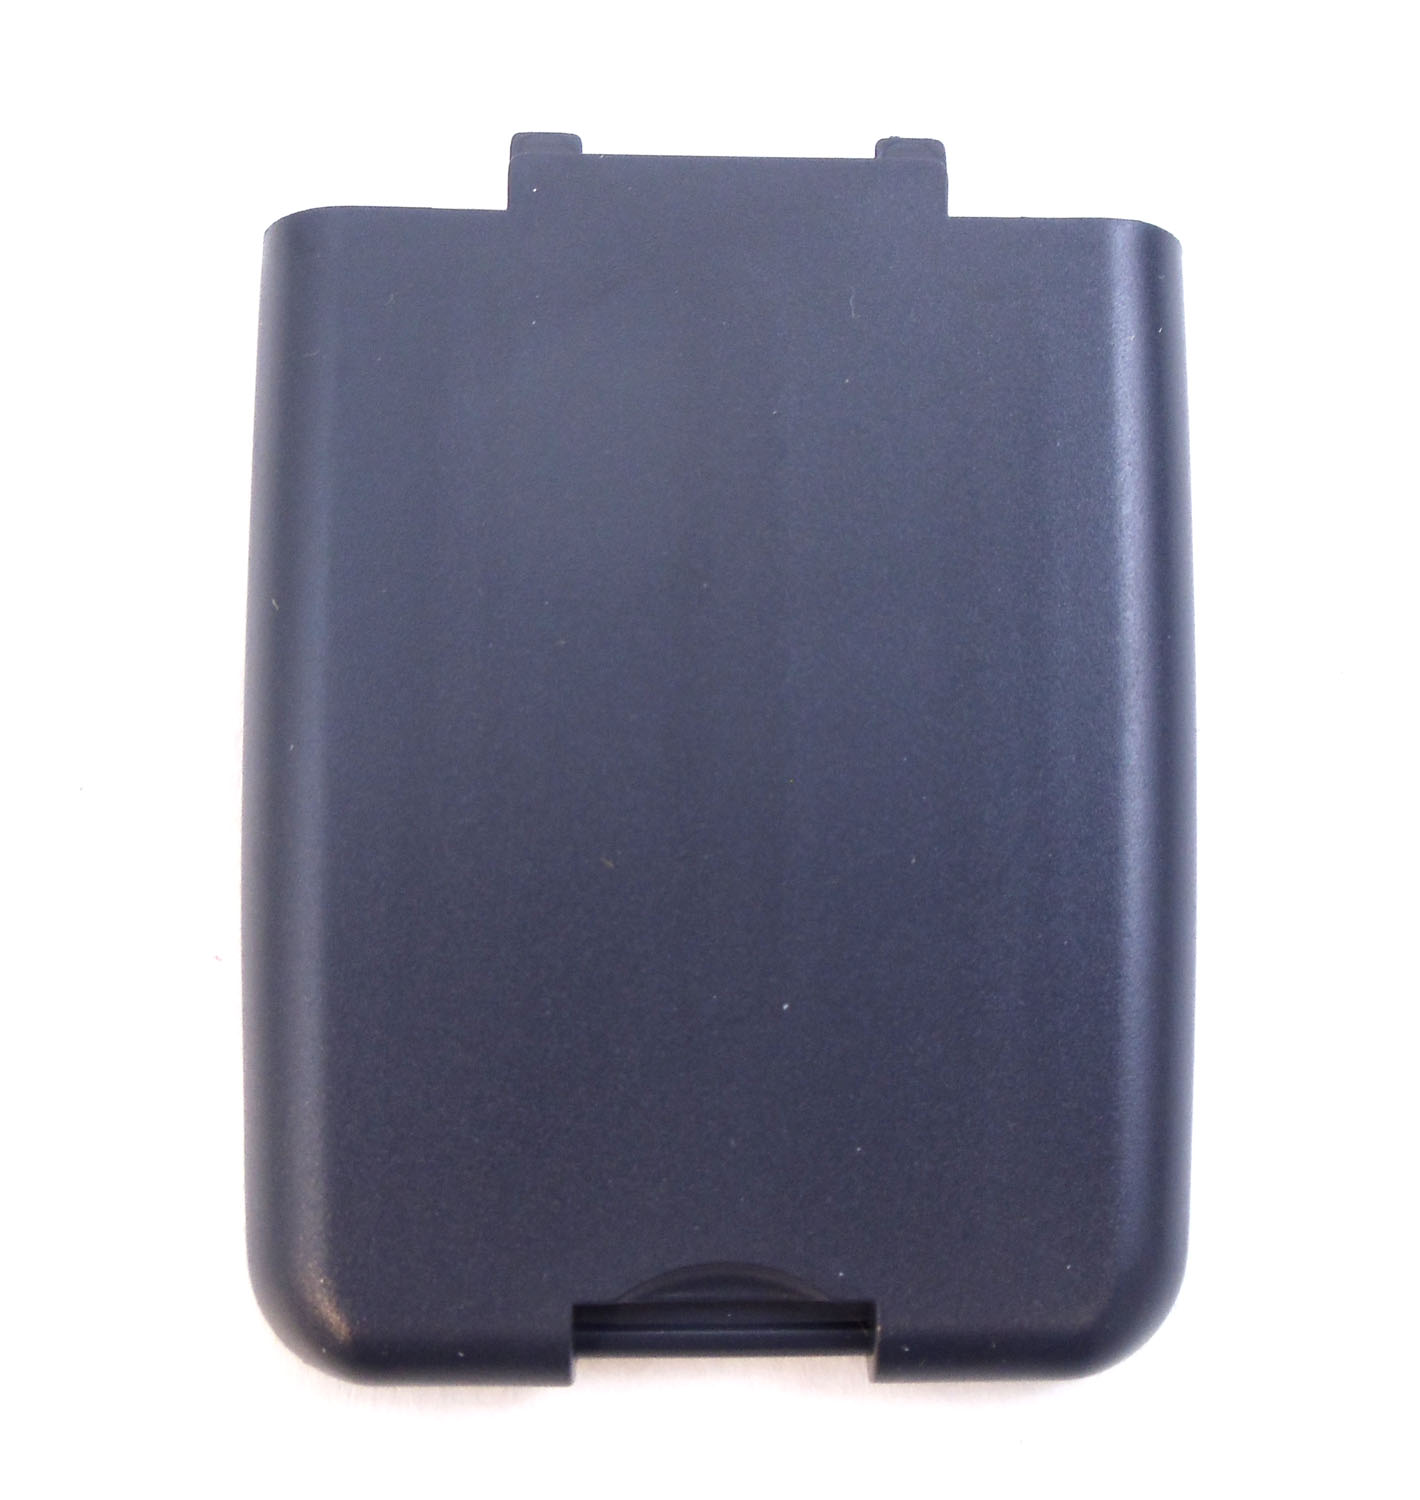 BATTERY COVER FOR 75515